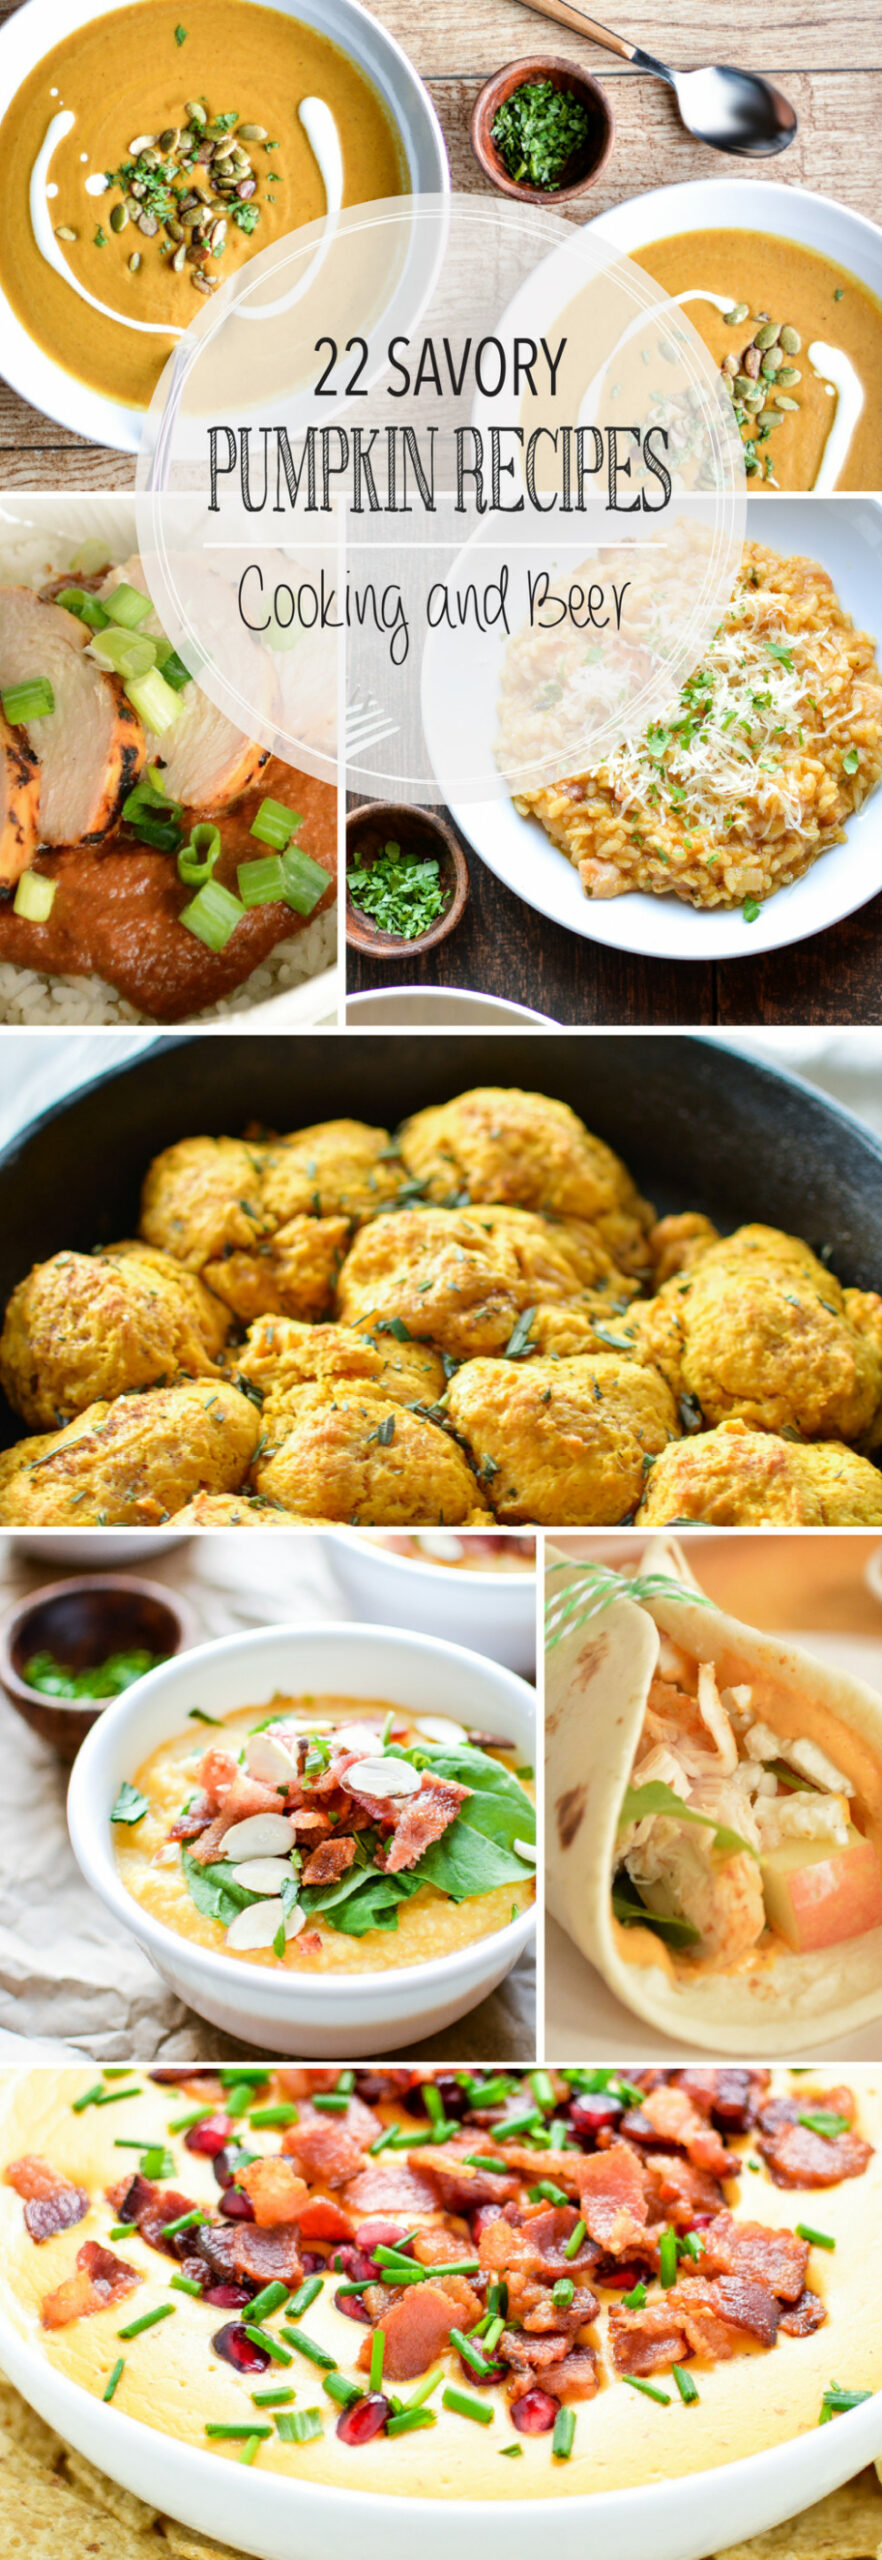 22 Savory Pumpkin Recipes - Cooking and Beer - fall recipes dinner